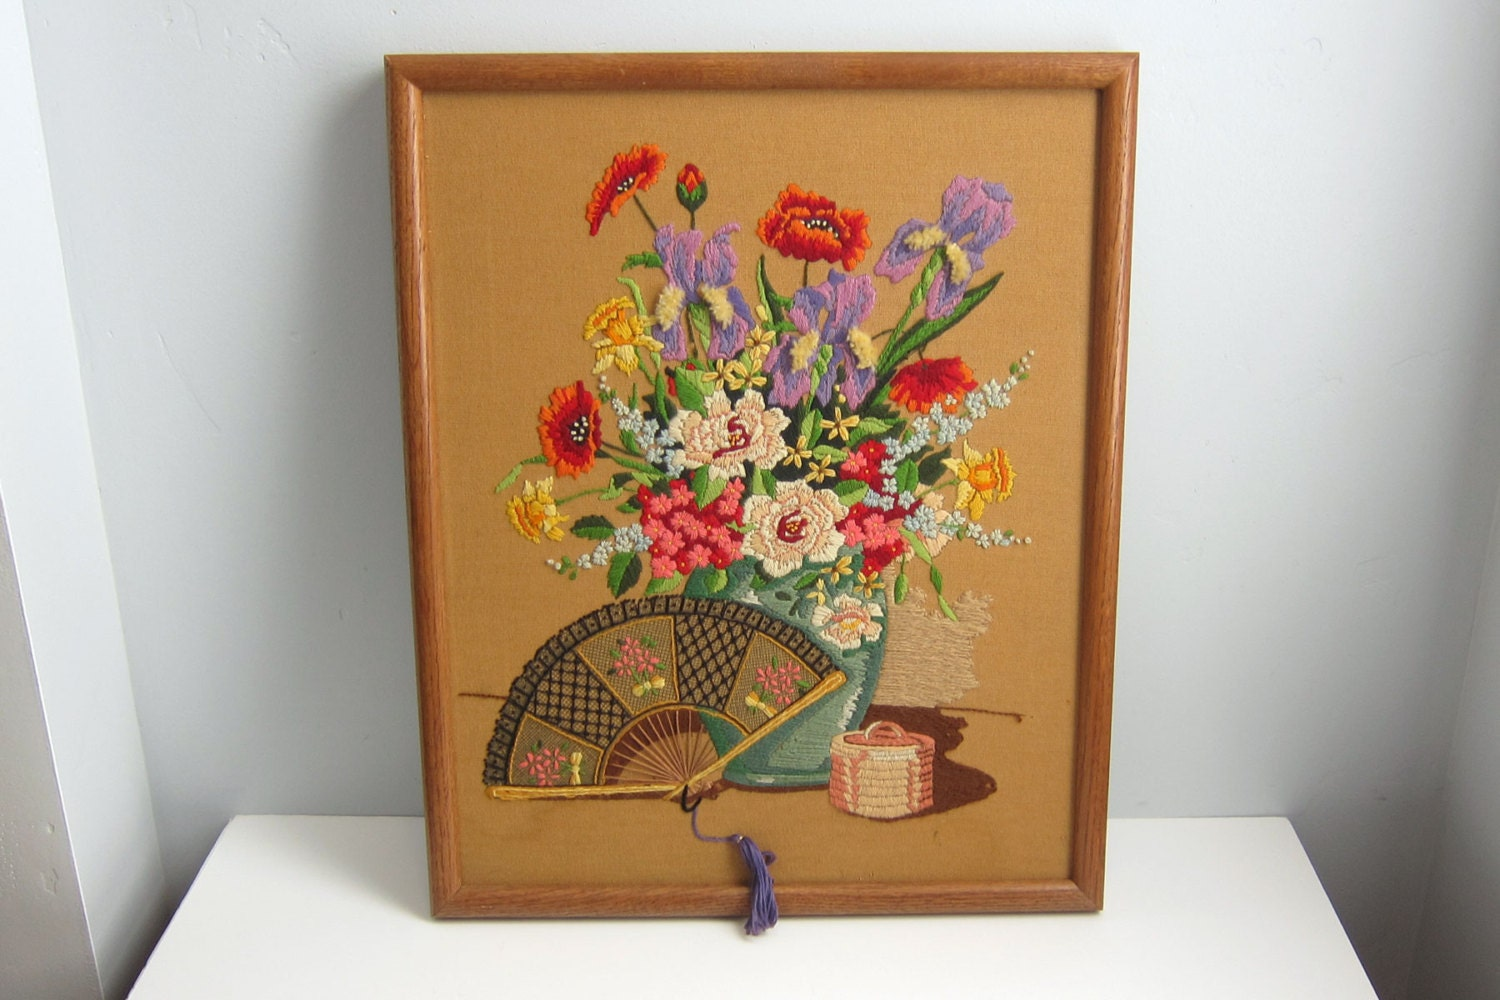 Vintage Wood Framed Crewel Embroidery Flowers And Fan With